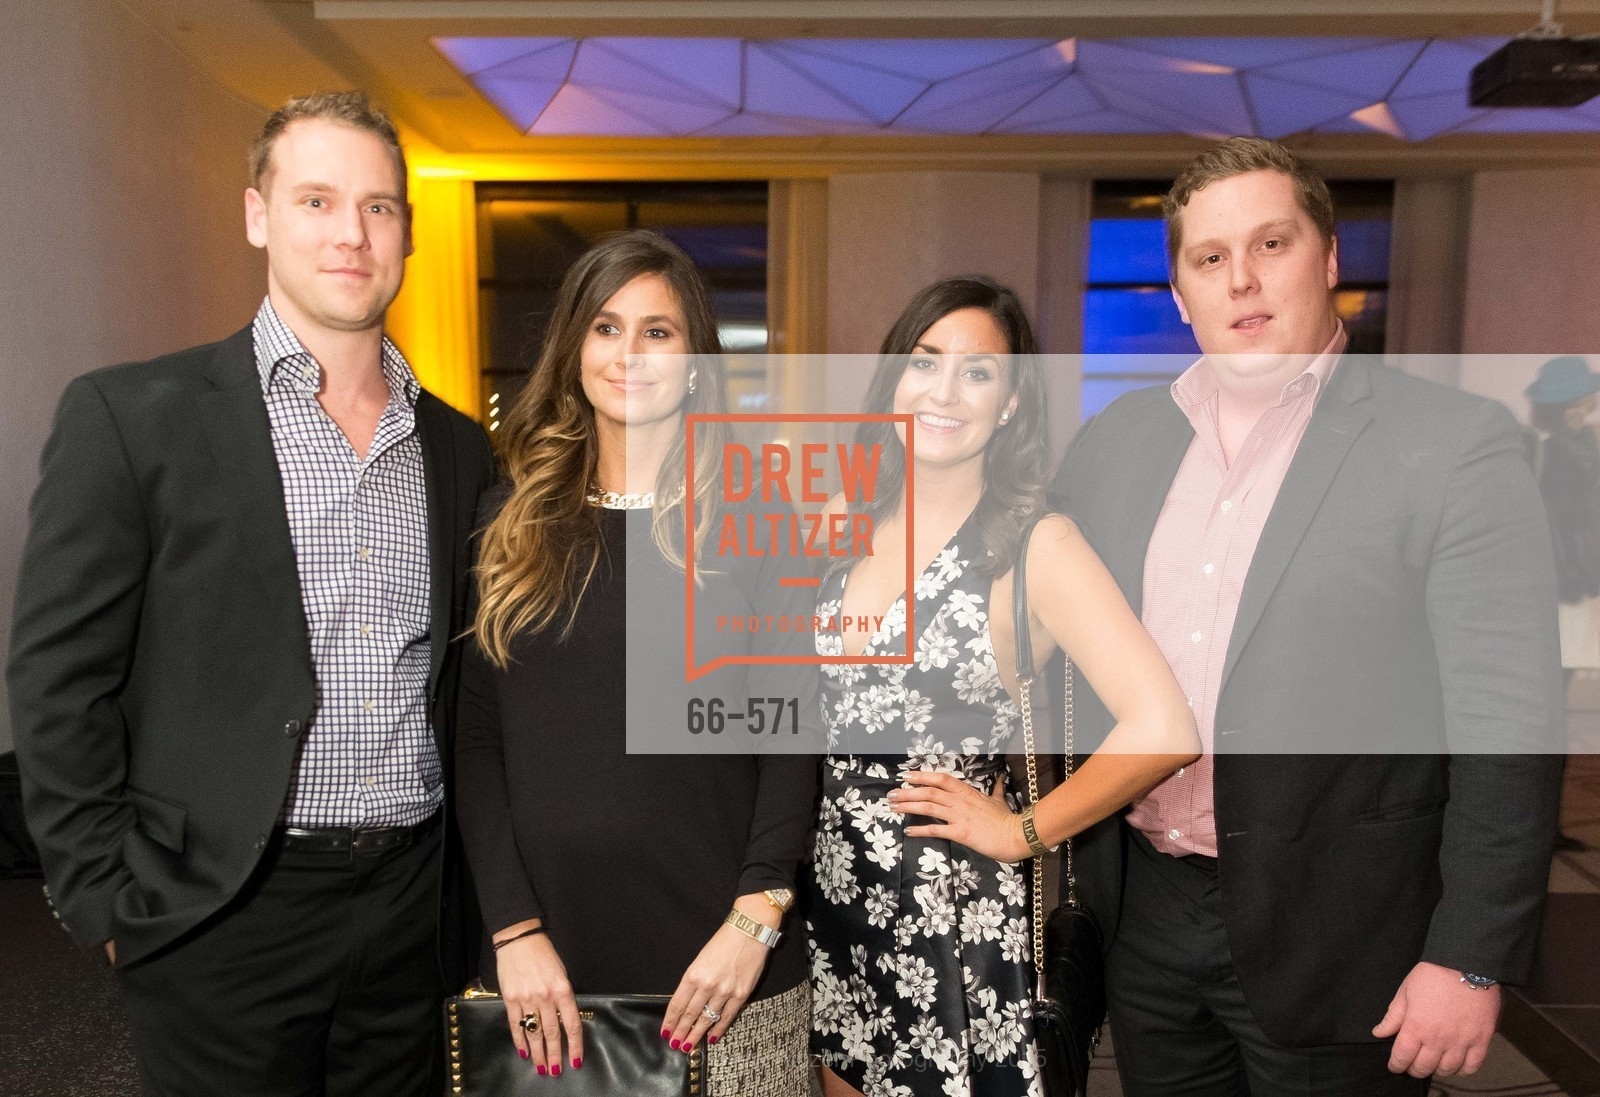 Anderson Pugash, Kelly Boynton, Kaitlyn Landerson, Jack Herr, The 10th Annual San Francisco Social, W Hotel. 181 3rd St, November 21st, 2015,Drew Altizer, Drew Altizer Photography, full-service agency, private events, San Francisco photographer, photographer california